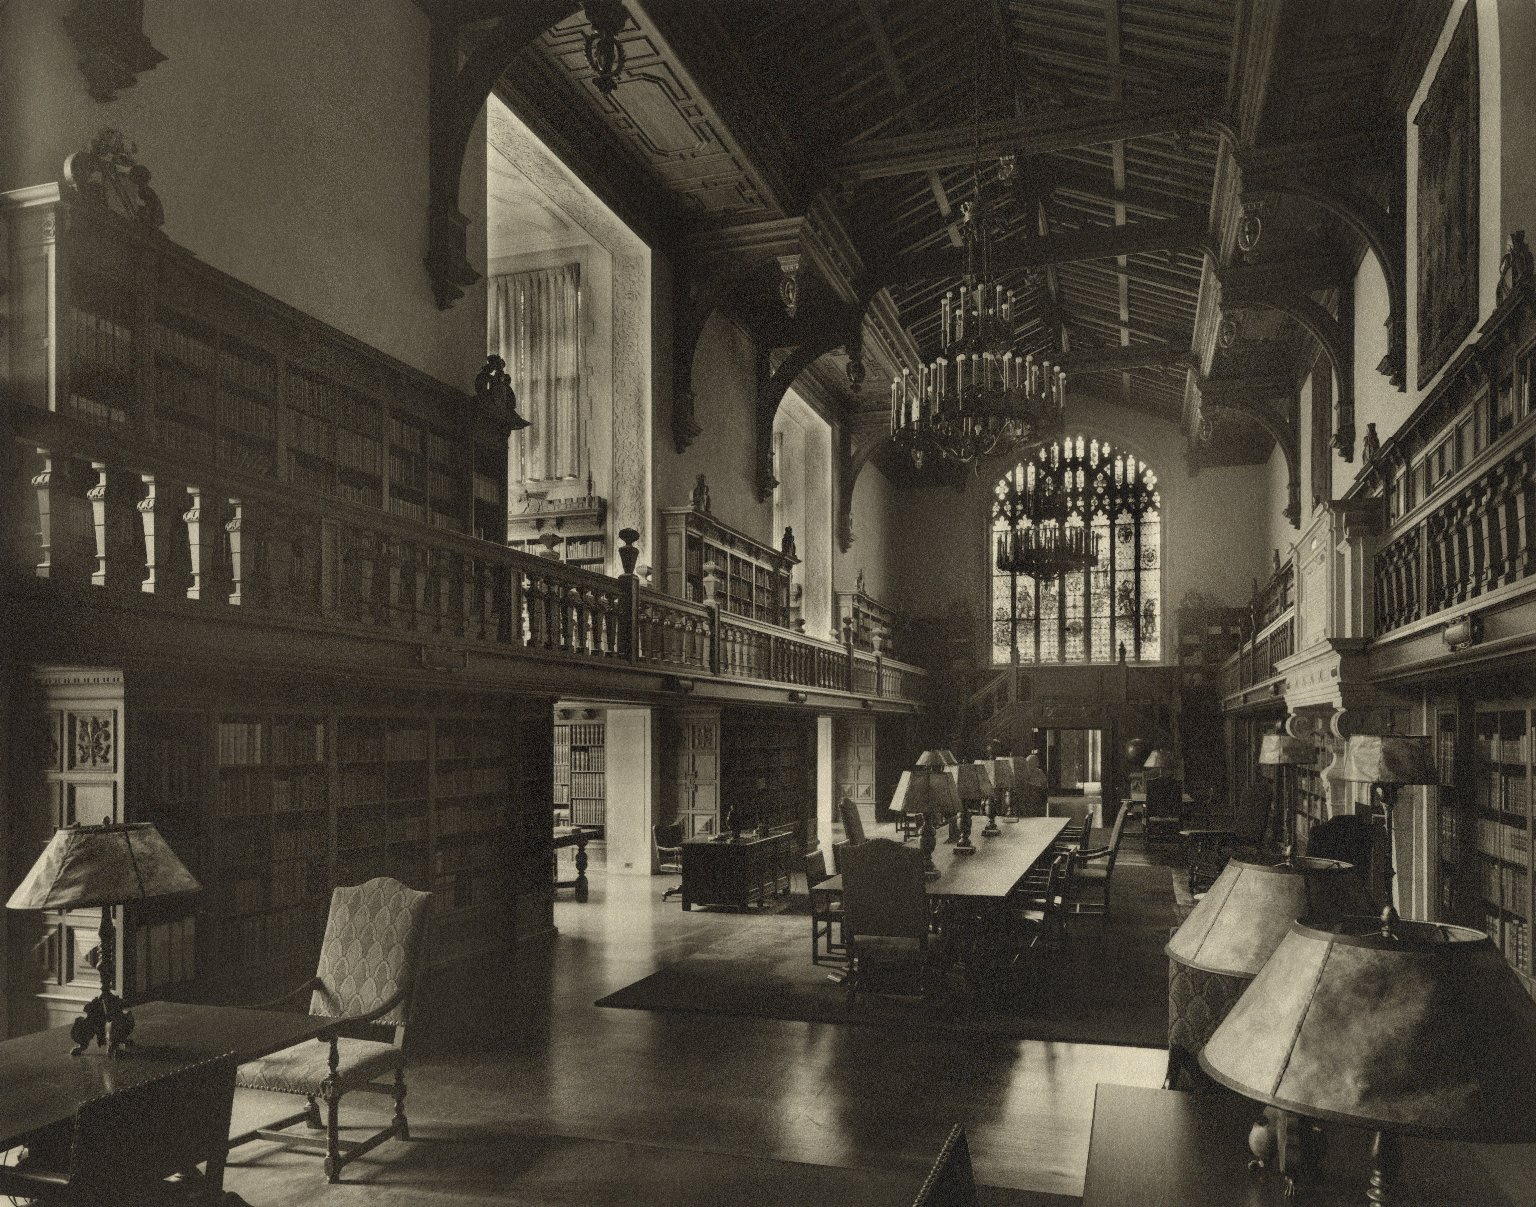 B&W photo of the Folger Reading Room from 1931